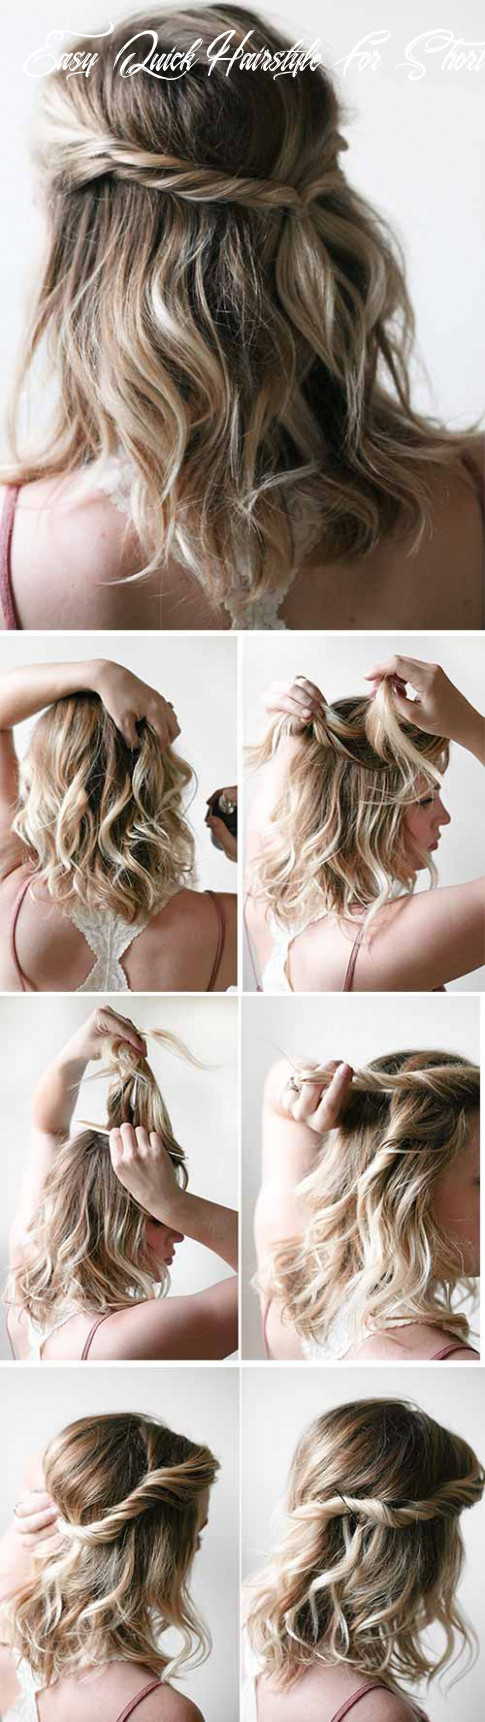 12 incredible diy short hairstyles a step by step guide easy quick hairstyle for short hair